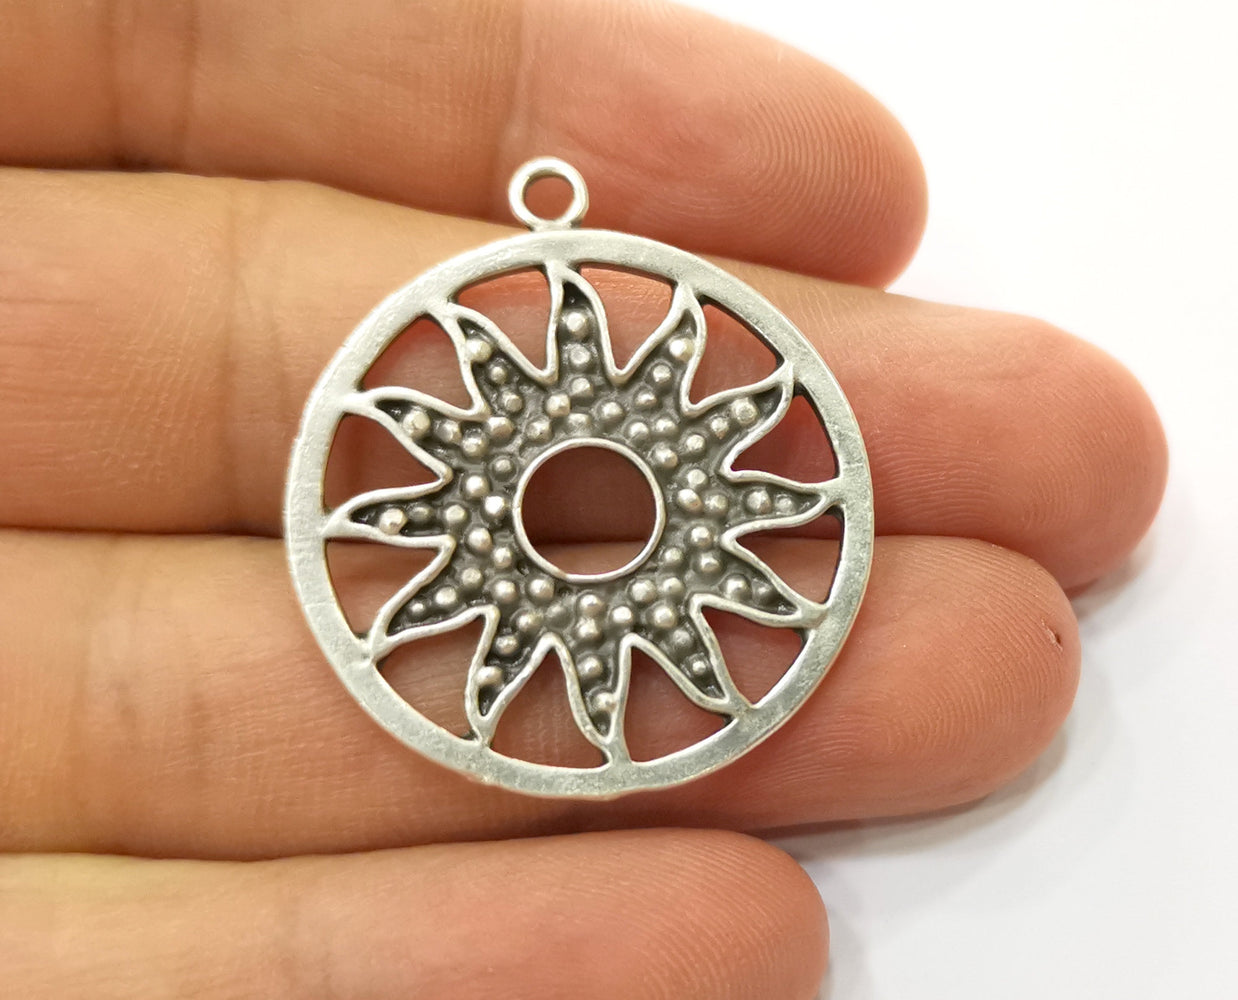 2 Silver Sun Charms Antique Silver Plated Charms (36x32mm)  G19158